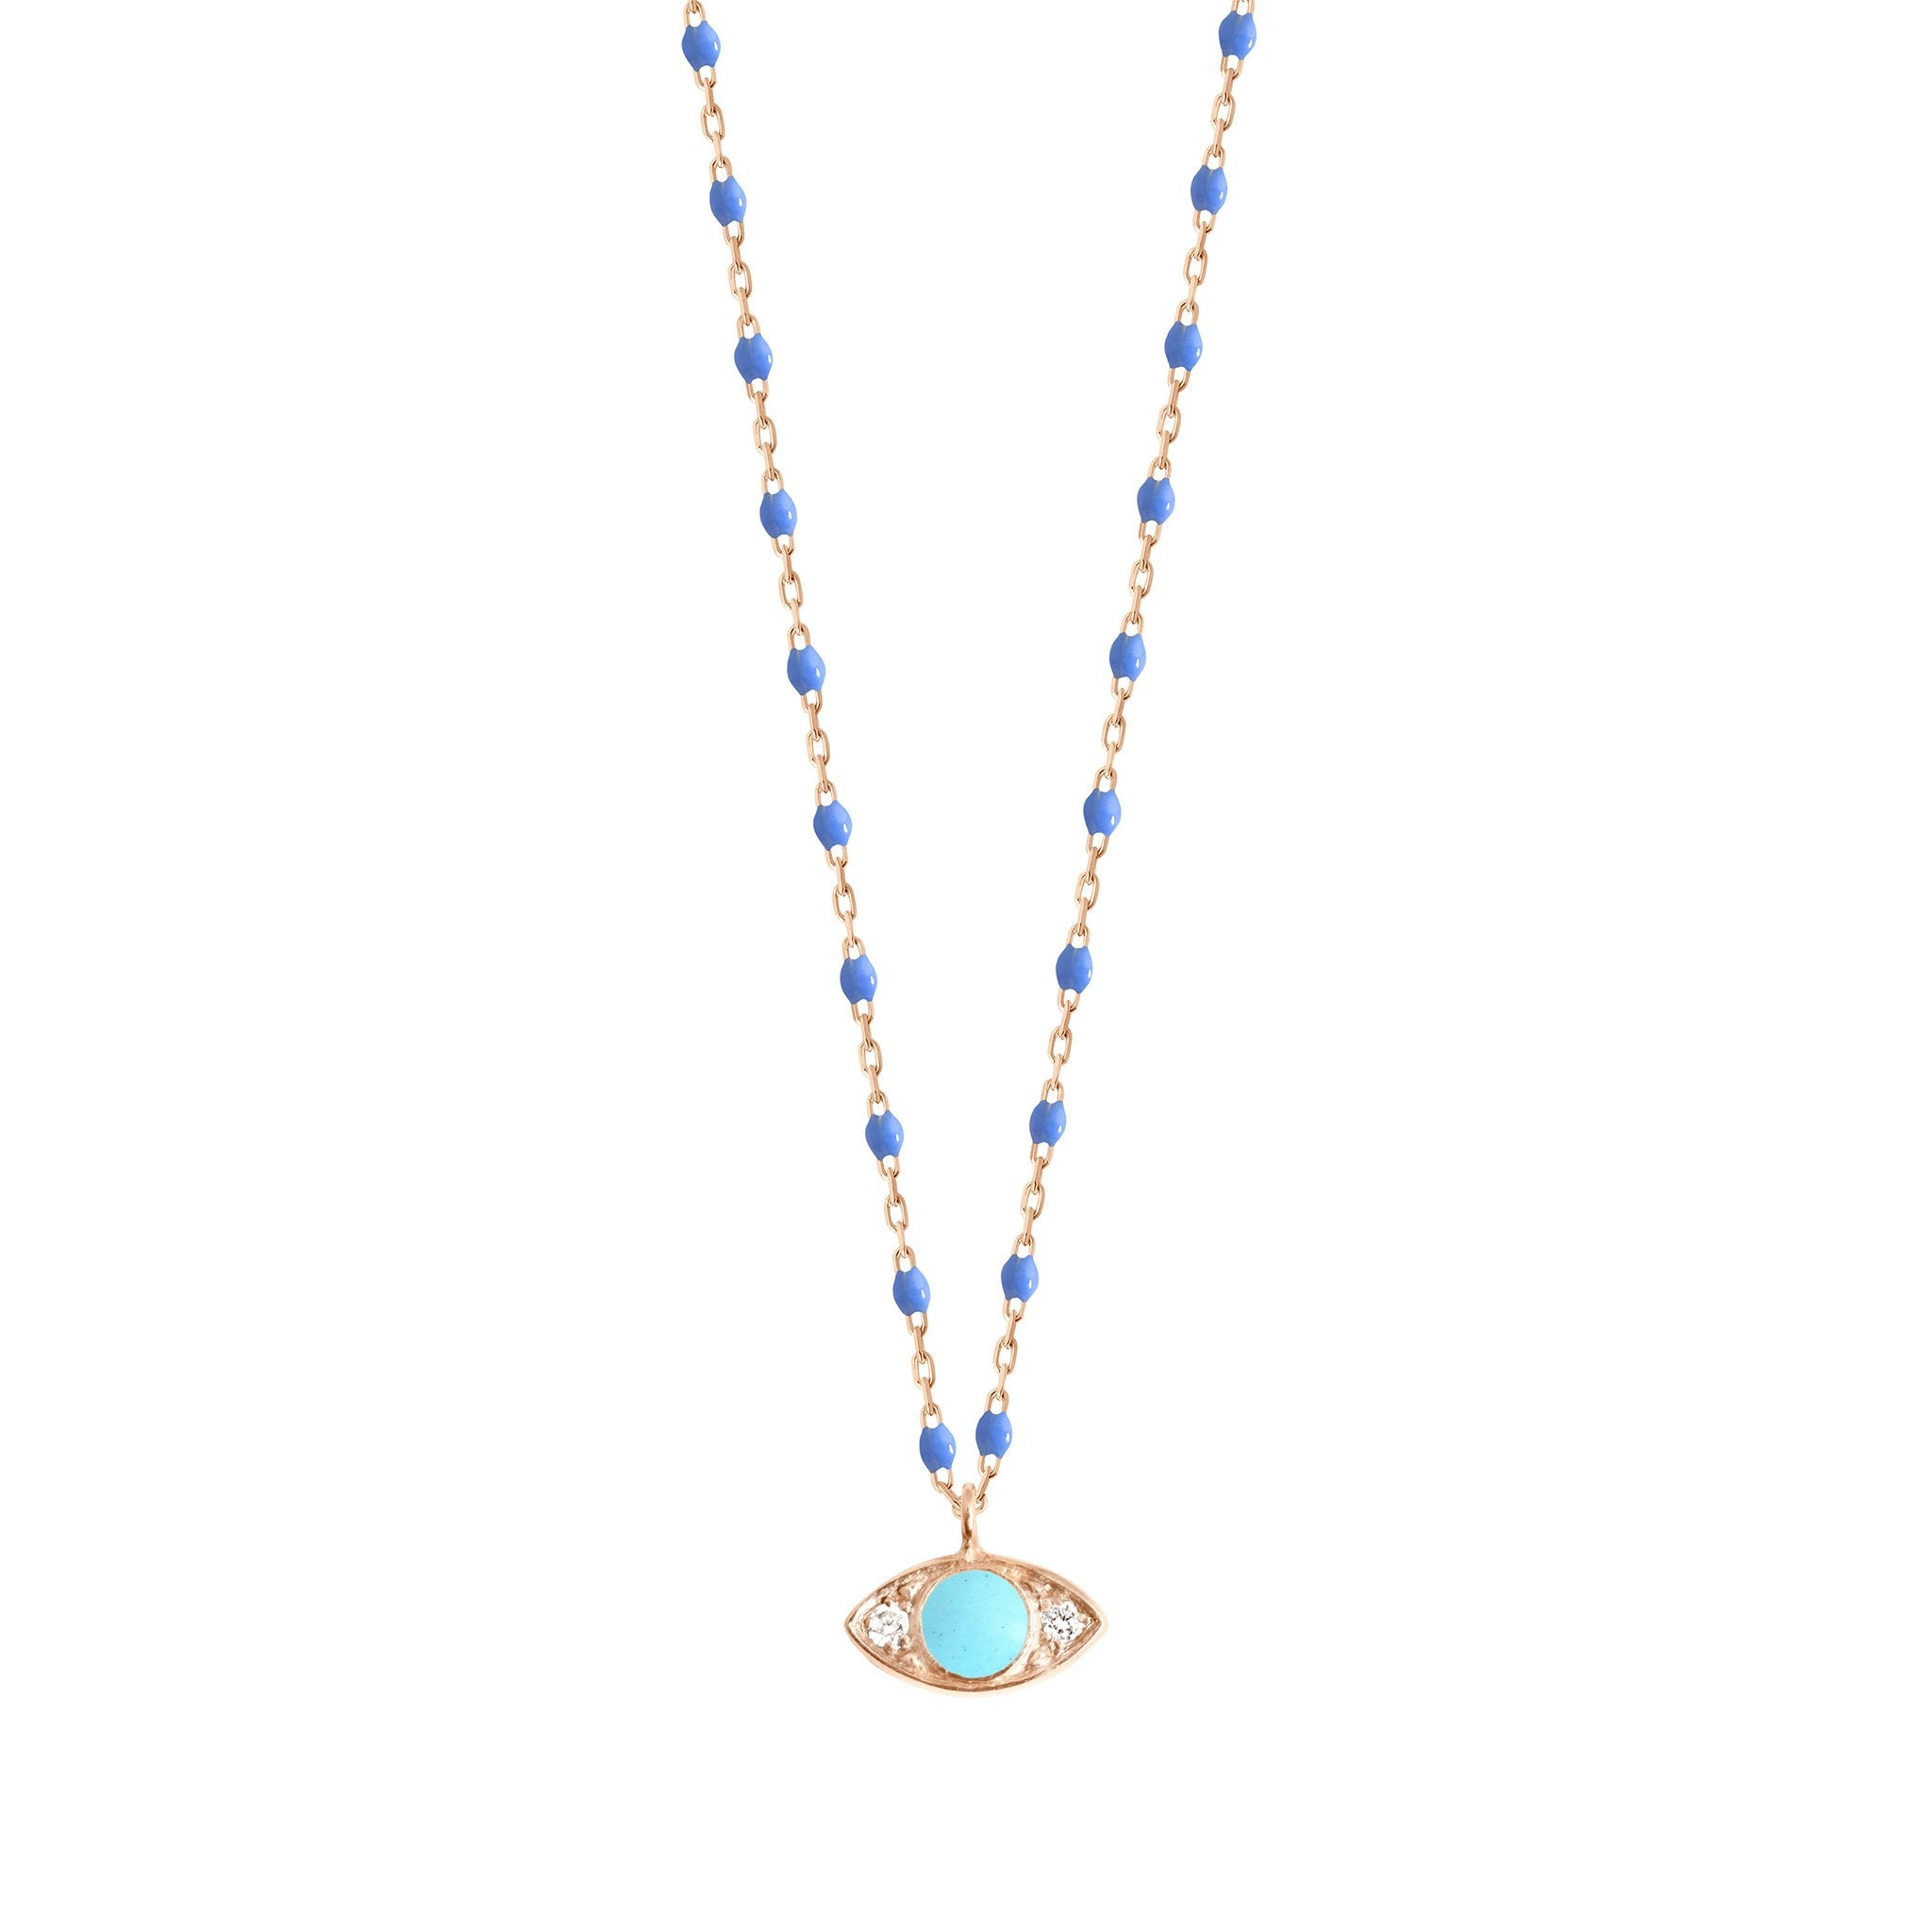 Gigi Clozeau - Eye Mini Gigi Bleuet diamond necklace, Rose Gold, 16.5""